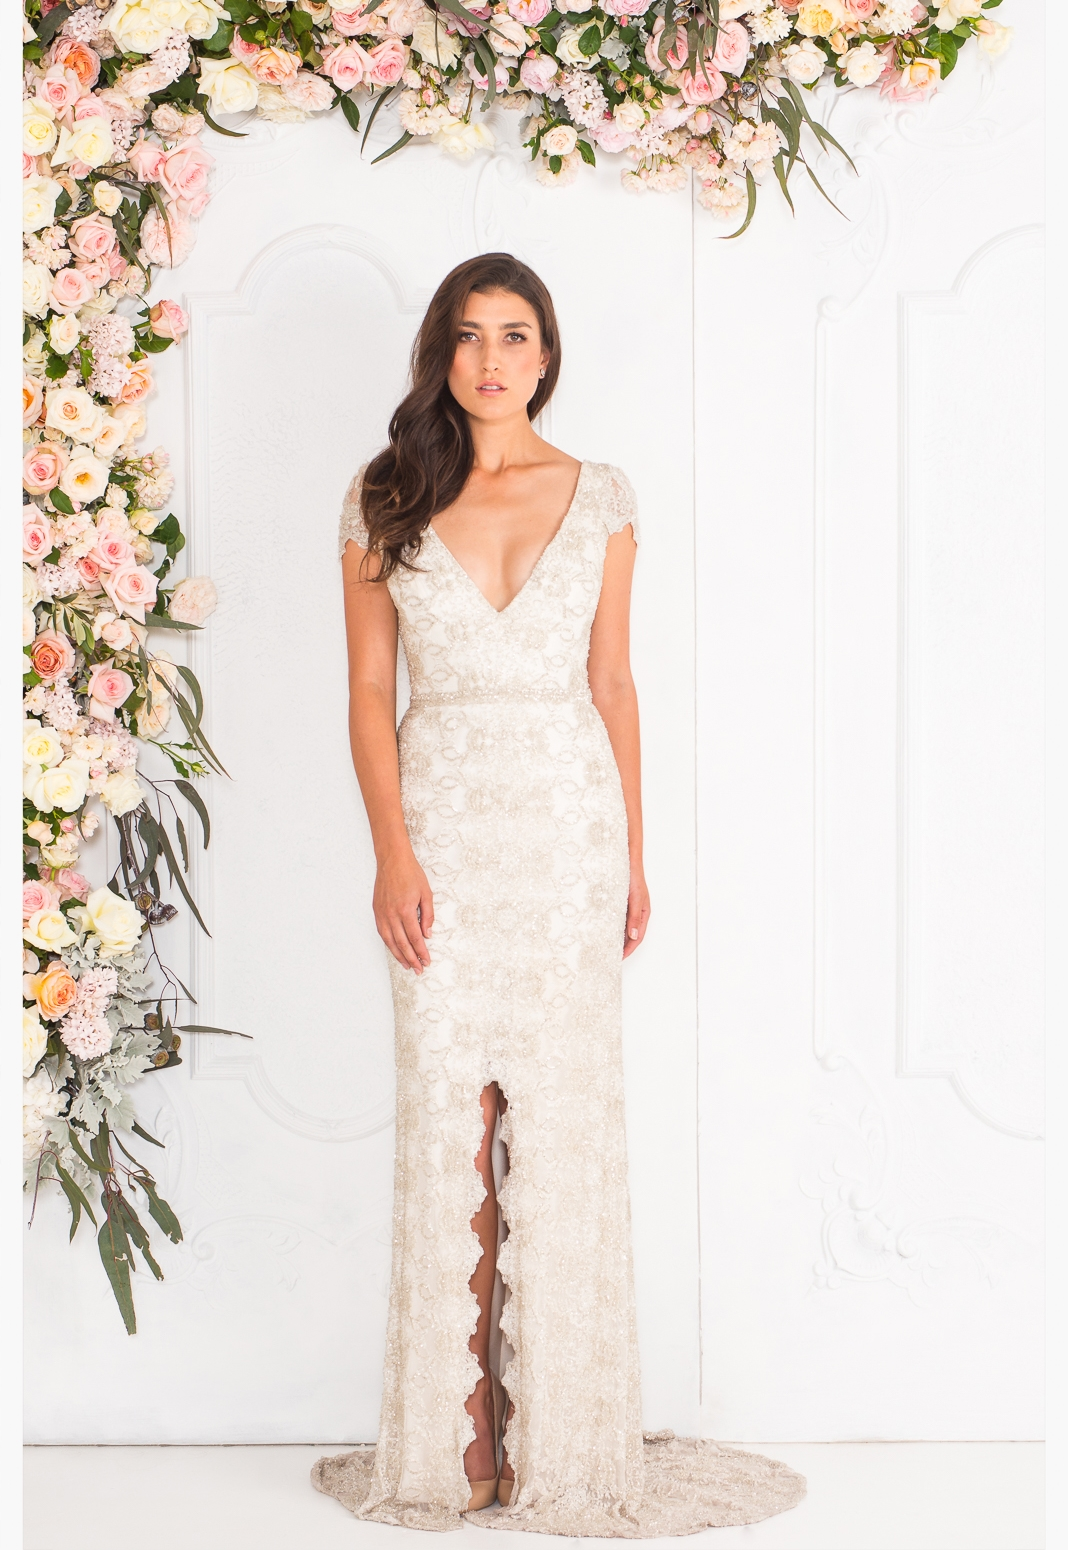 JANE HILL BRIDAL - GEORGIE BROWN